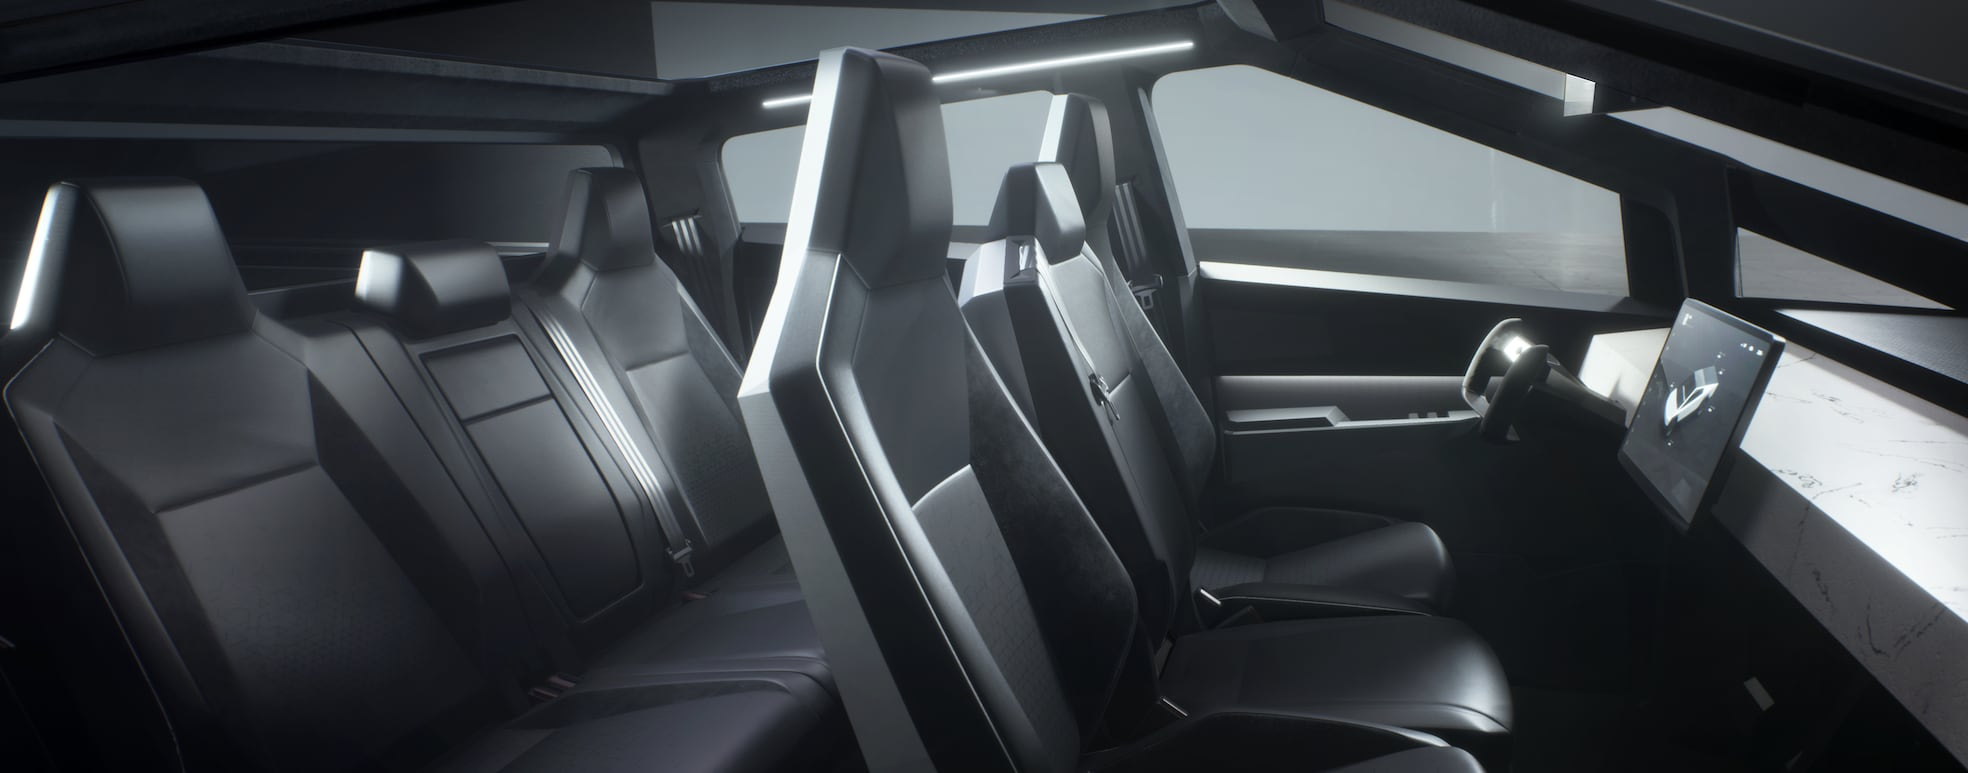 Tesla Cybertruck Interior and Seating,